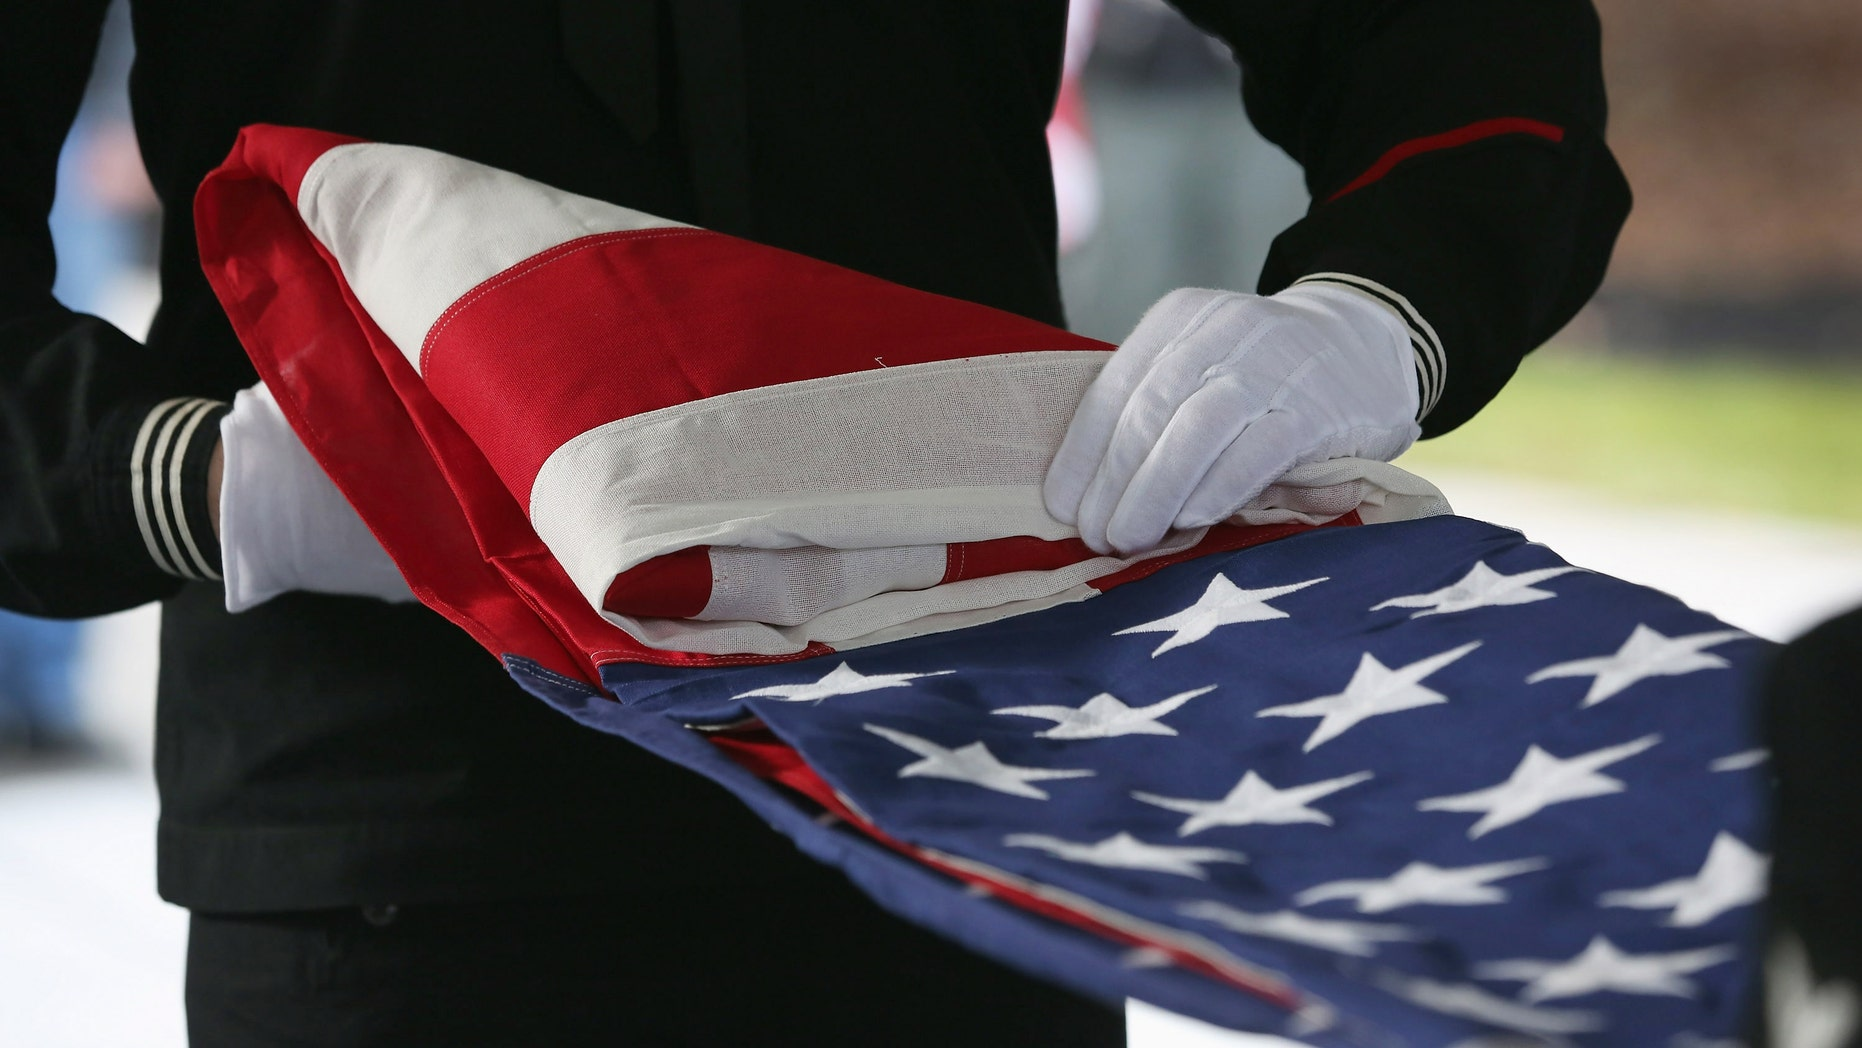 WADING RIVER, NY - DECEMBER 11:  A U.S. Navy honor guard folds an American flag after removing it from the casket of Hurricane Sandy victim David Maxwell, before his burial at the Calverton National Cemetery on December 11, 2012 near the Wading River hamlet of Long Island, New York. Maxwell, 66, was the last of Sandy's victims found on the Staten Island borough of New York City, when his body was discovered in his Midland Beach home 11 days after the storm. A Vietnam veteran, he was buried at the national cemetery, accompanied by honor guards from the Catholic War Veterans and the Patriot Guard Riders.  (Photo by John Moore/Getty Images)